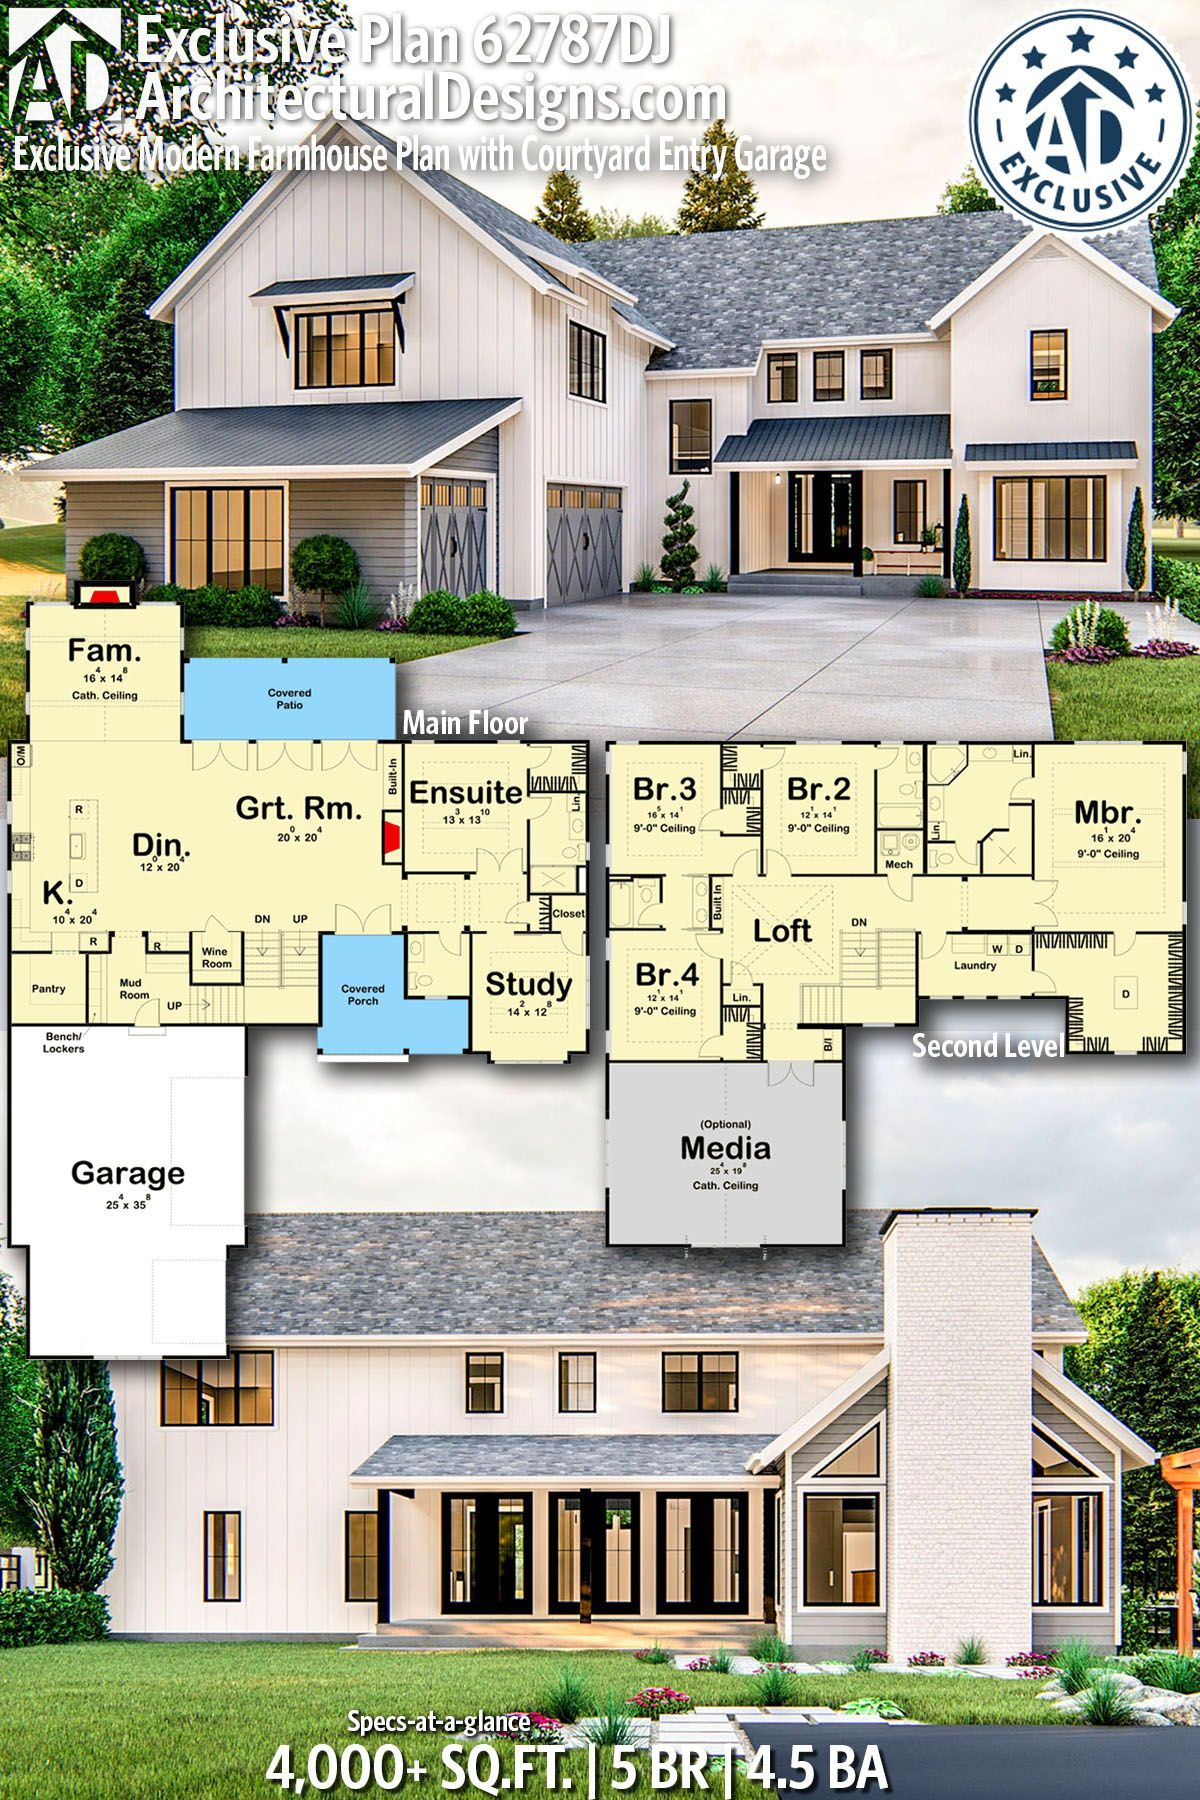 Plan 62787dj Exclusive Modern Farmhouse Plan With Courtyard Entry Garage Modern Farmhouse Plans Farmhouse Plans House Blueprints